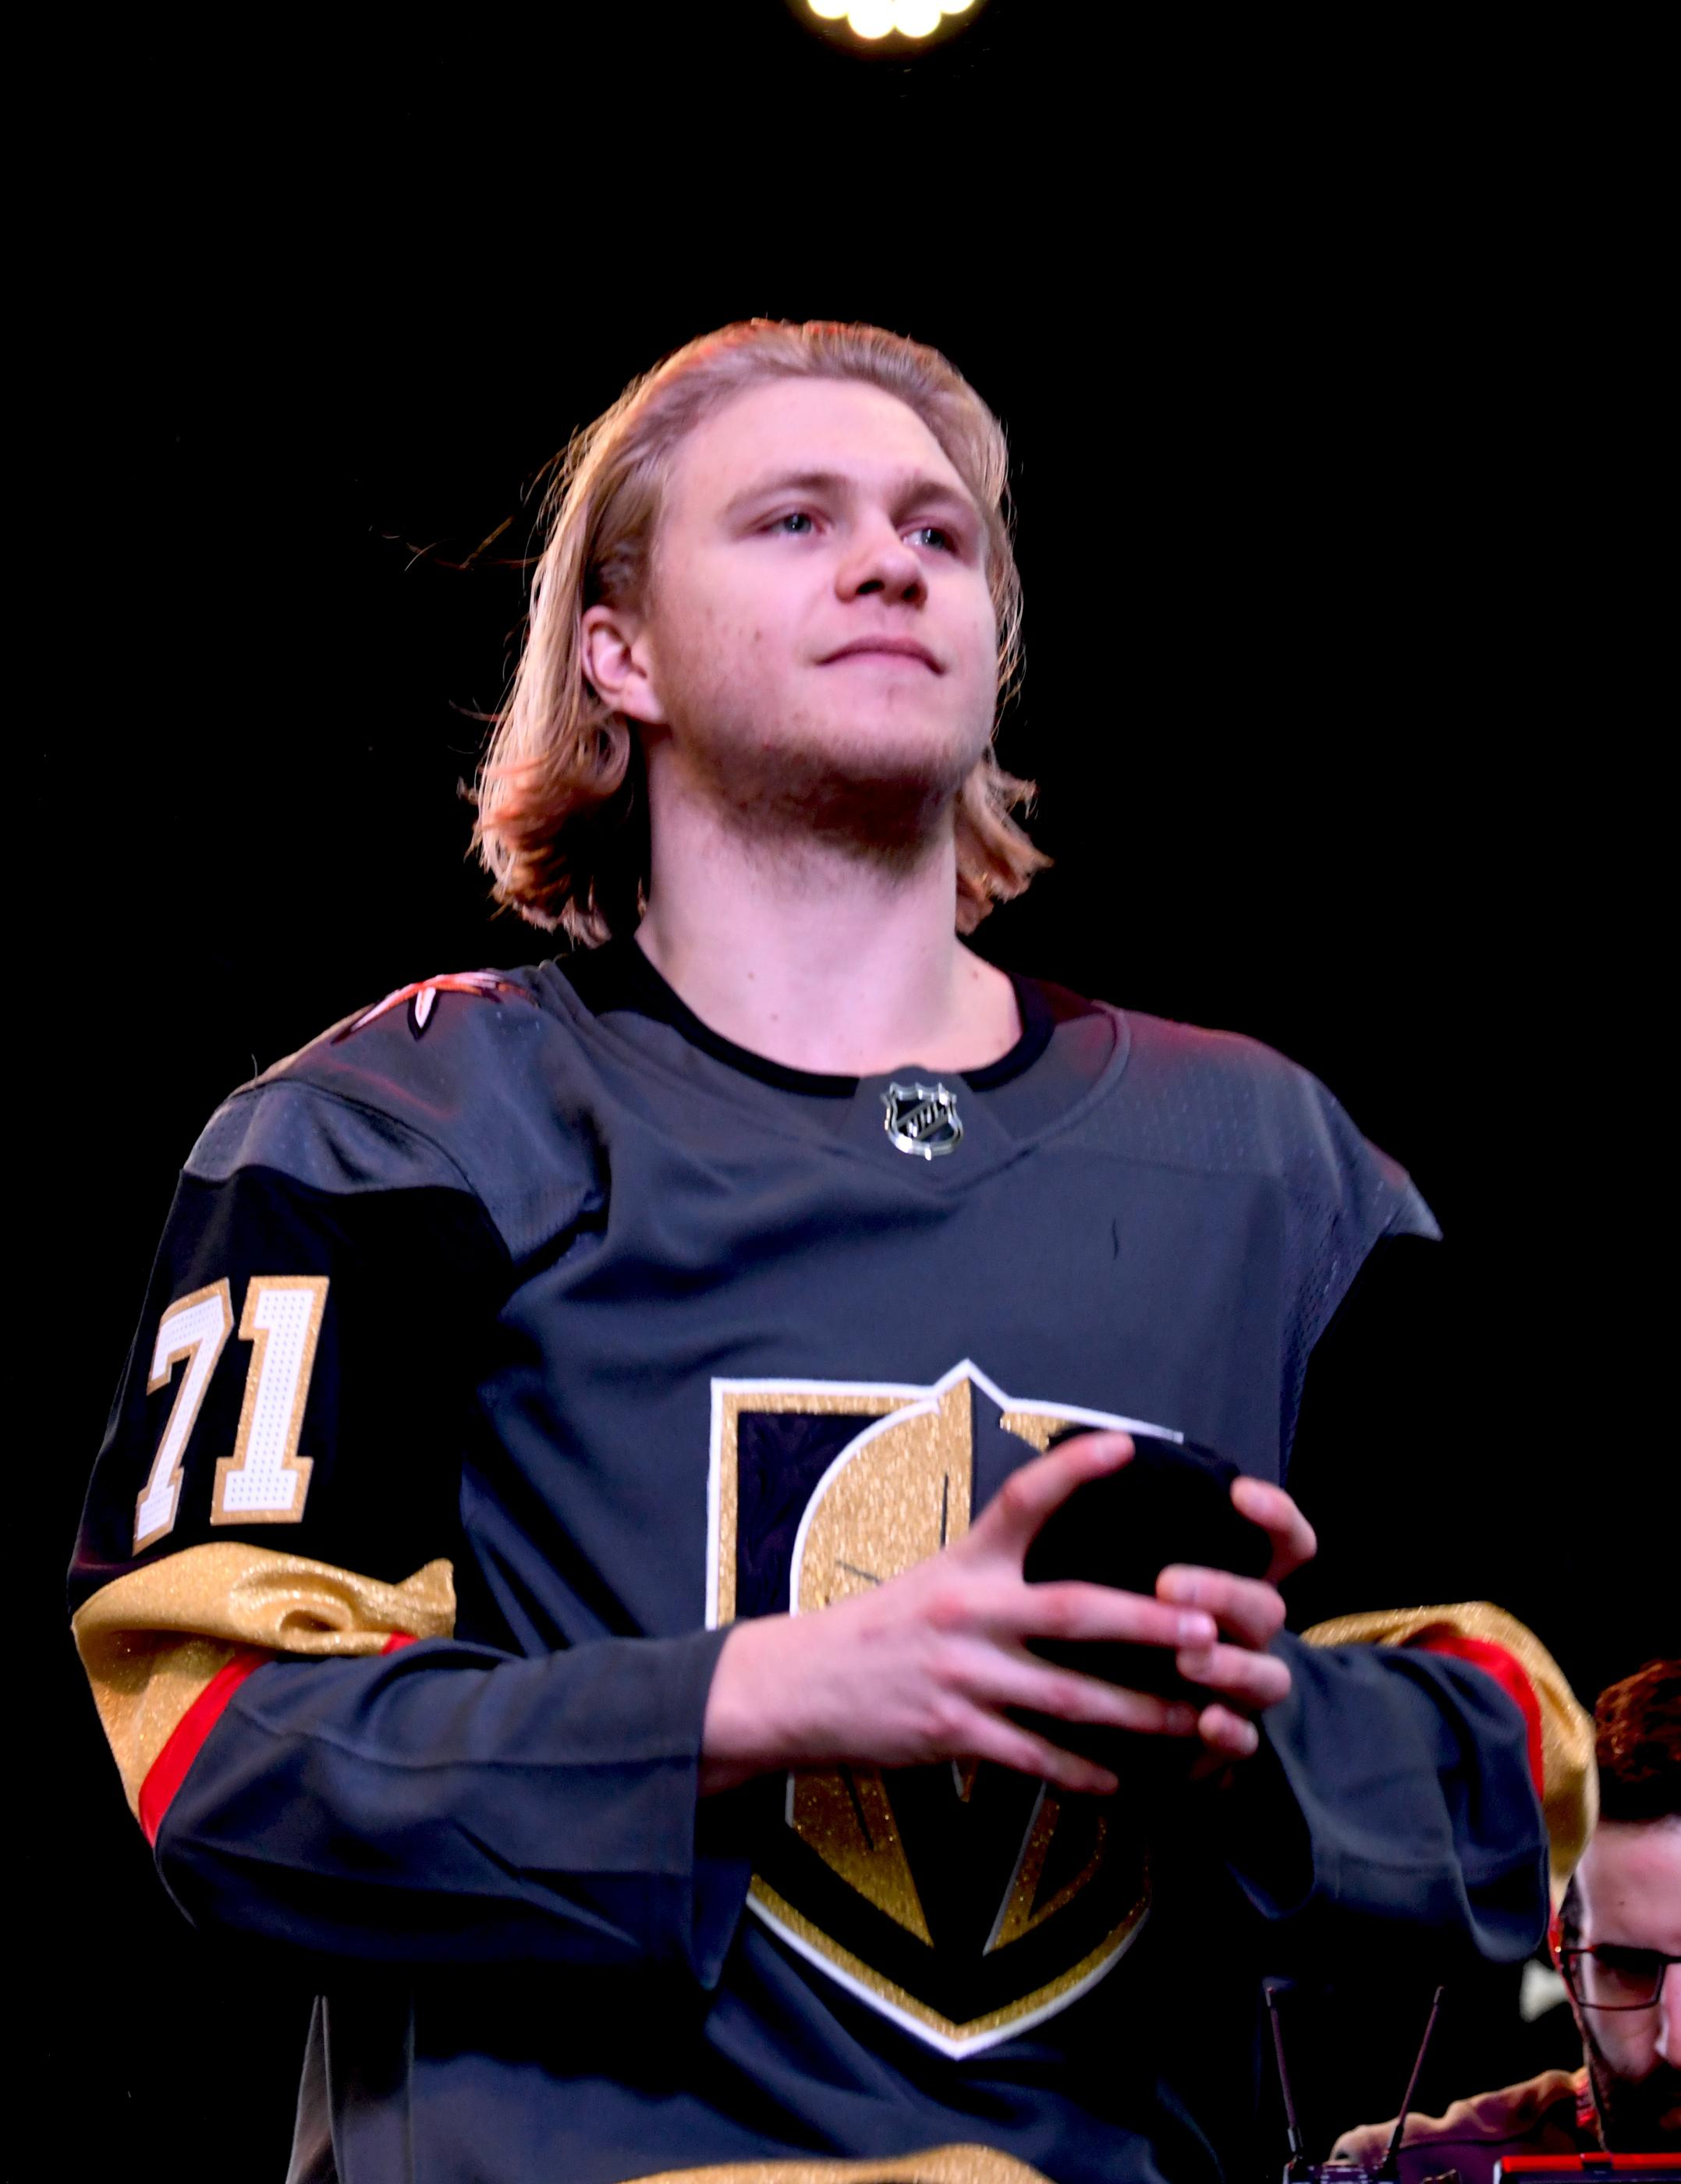 The Golden Knights host a Fan Fest with the D Las Vegas and Fremont Street Experience. Las Vegas Golden Knights player William Karlsson prepares to throw a t-shirt to fans as the team takes the stage at Fremont Street Experience. Sunday, January 14, 2017. CREDIT: Glenn Pinkerton/Las Vegas News Bureau